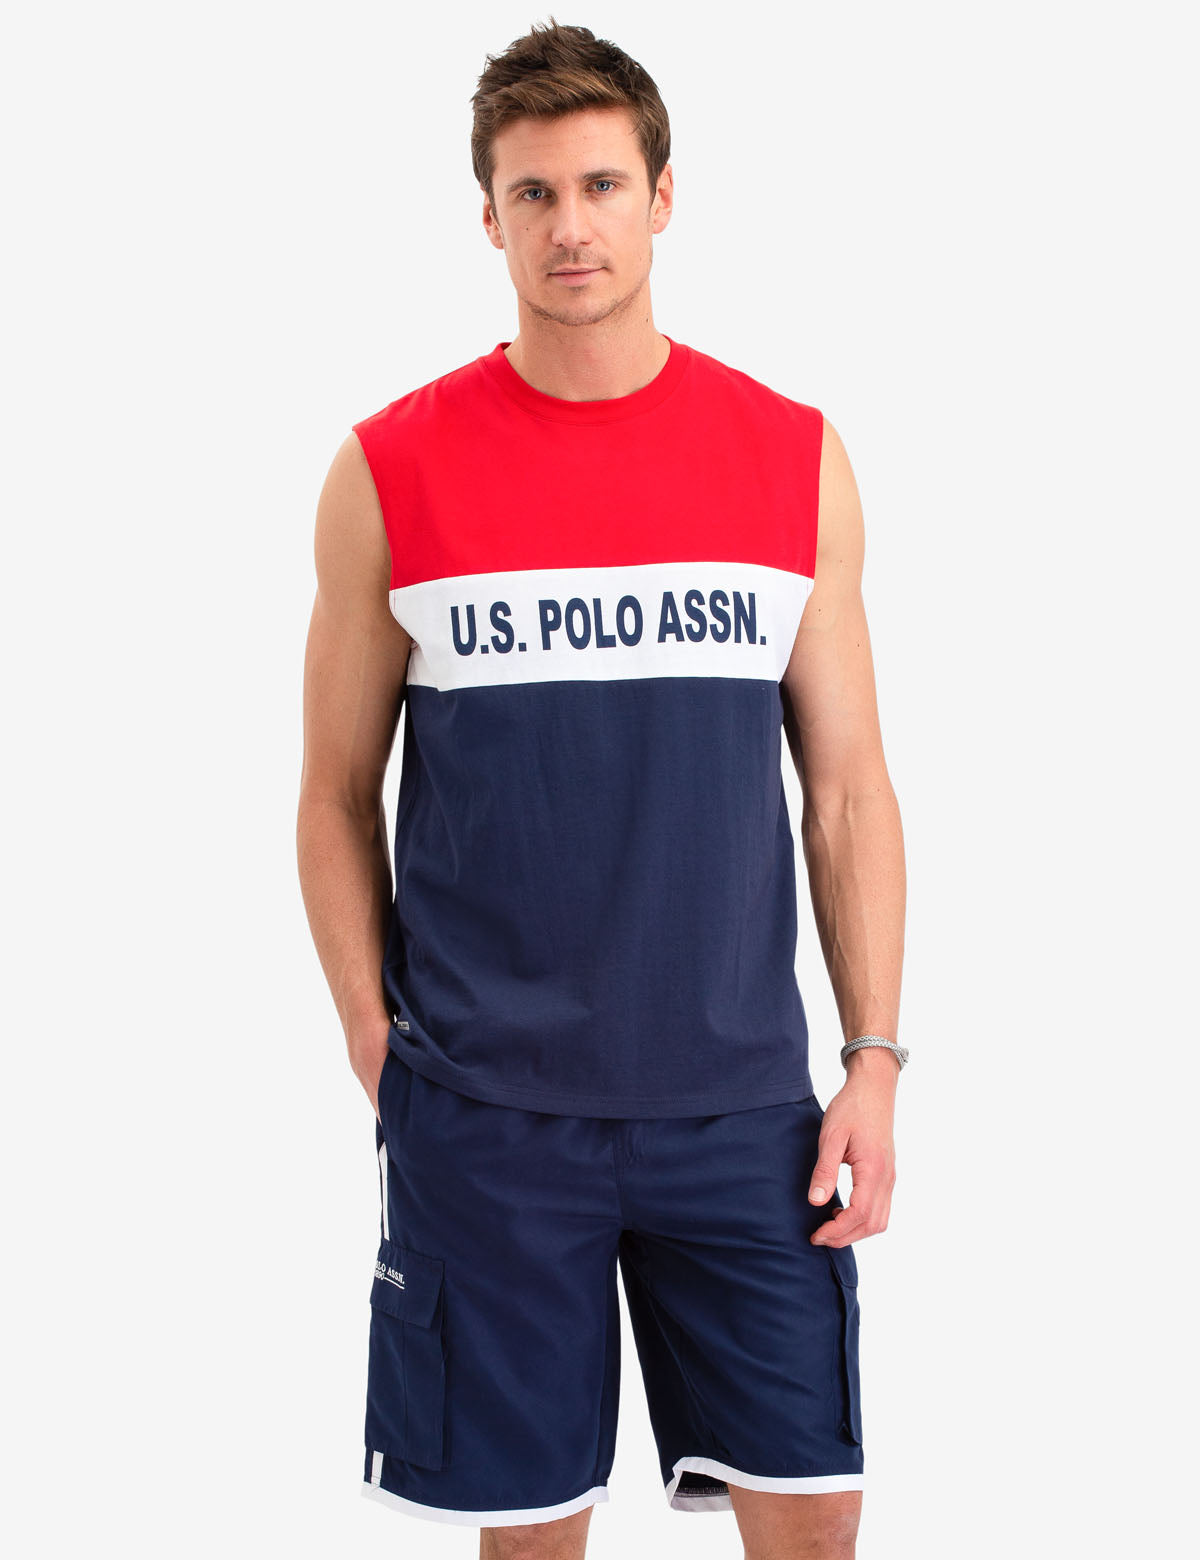 CHEST LOGO TANK - U.S. Polo Assn.